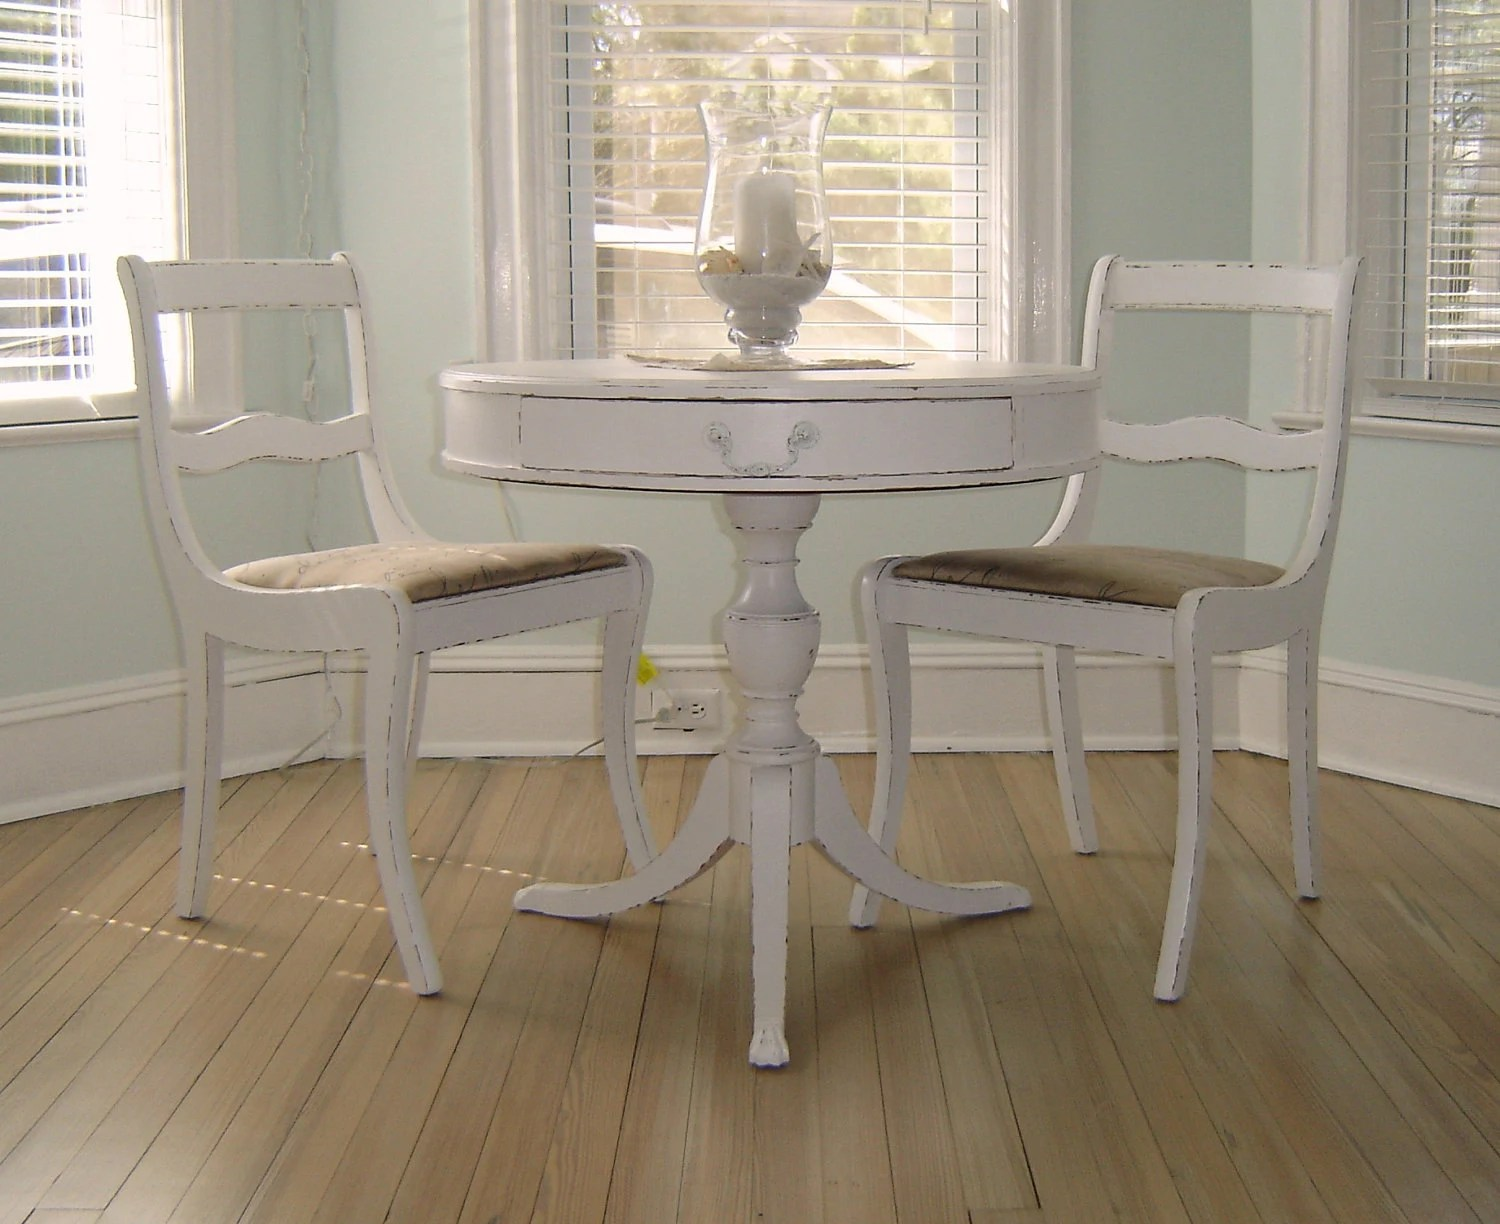 2 chair bistro set swivel mechanism suppliers french shabby chic white chairs and table